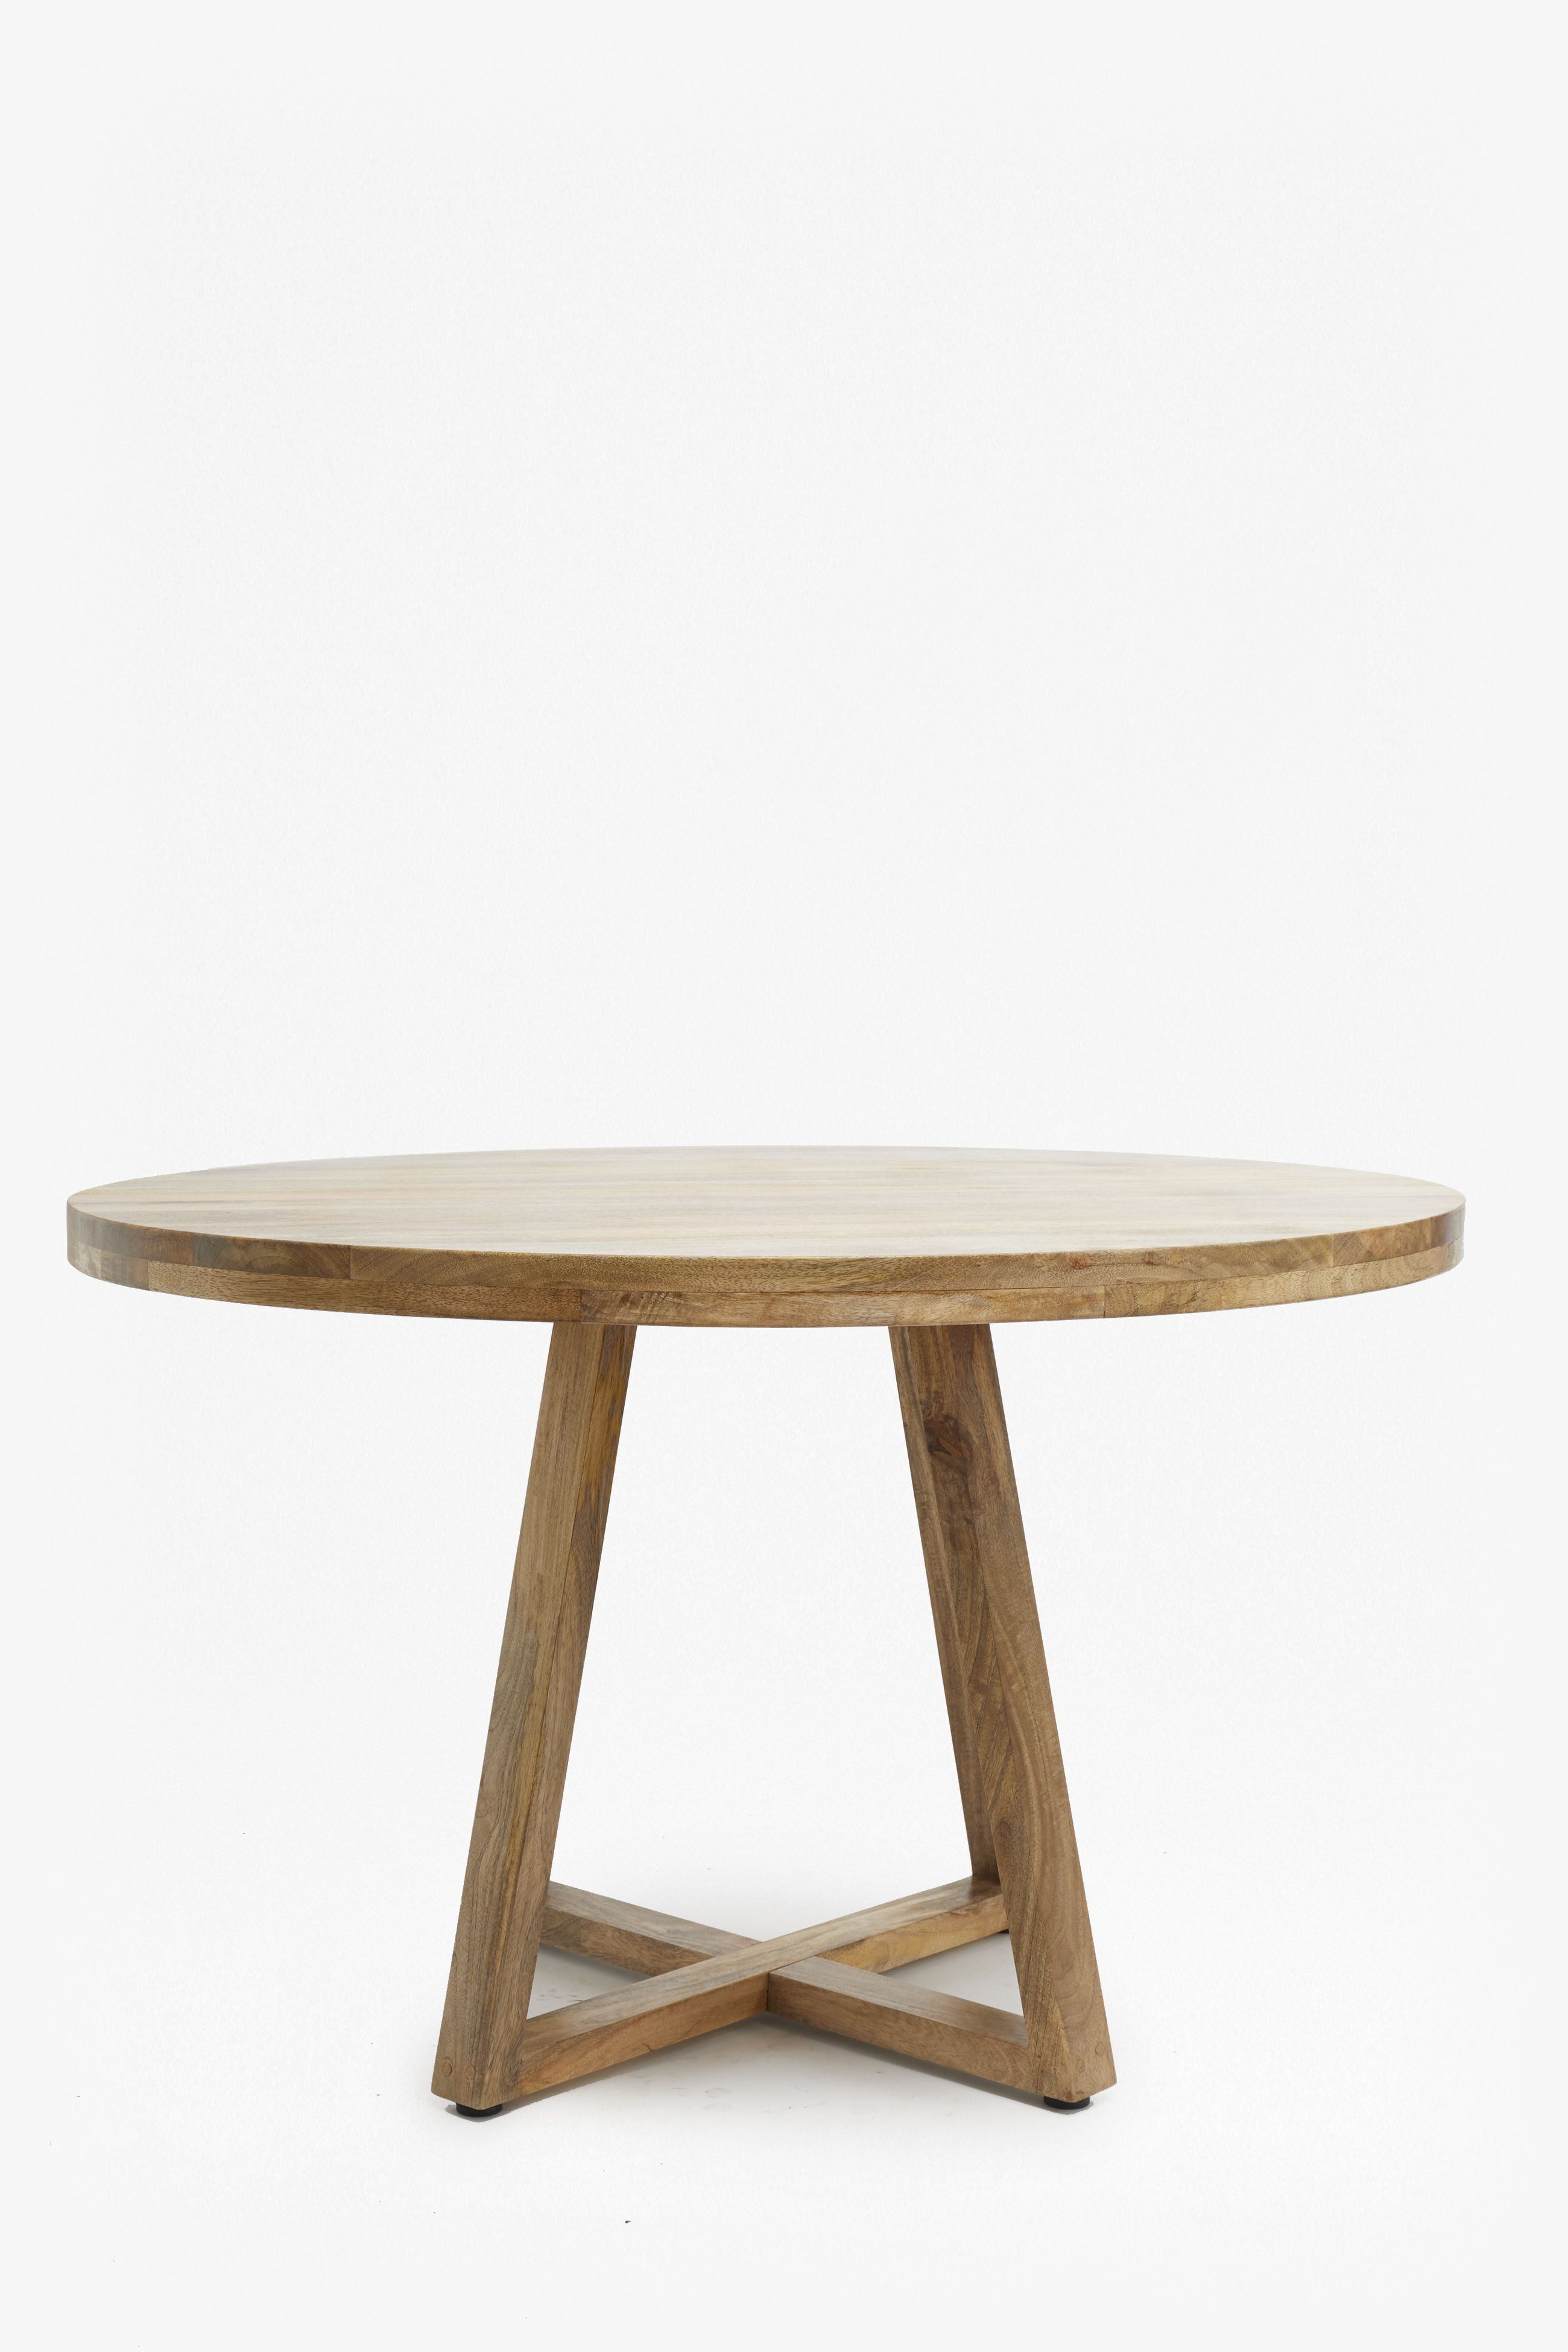 Round Wooden Dining Table In 2020 Round Wooden Dining Table